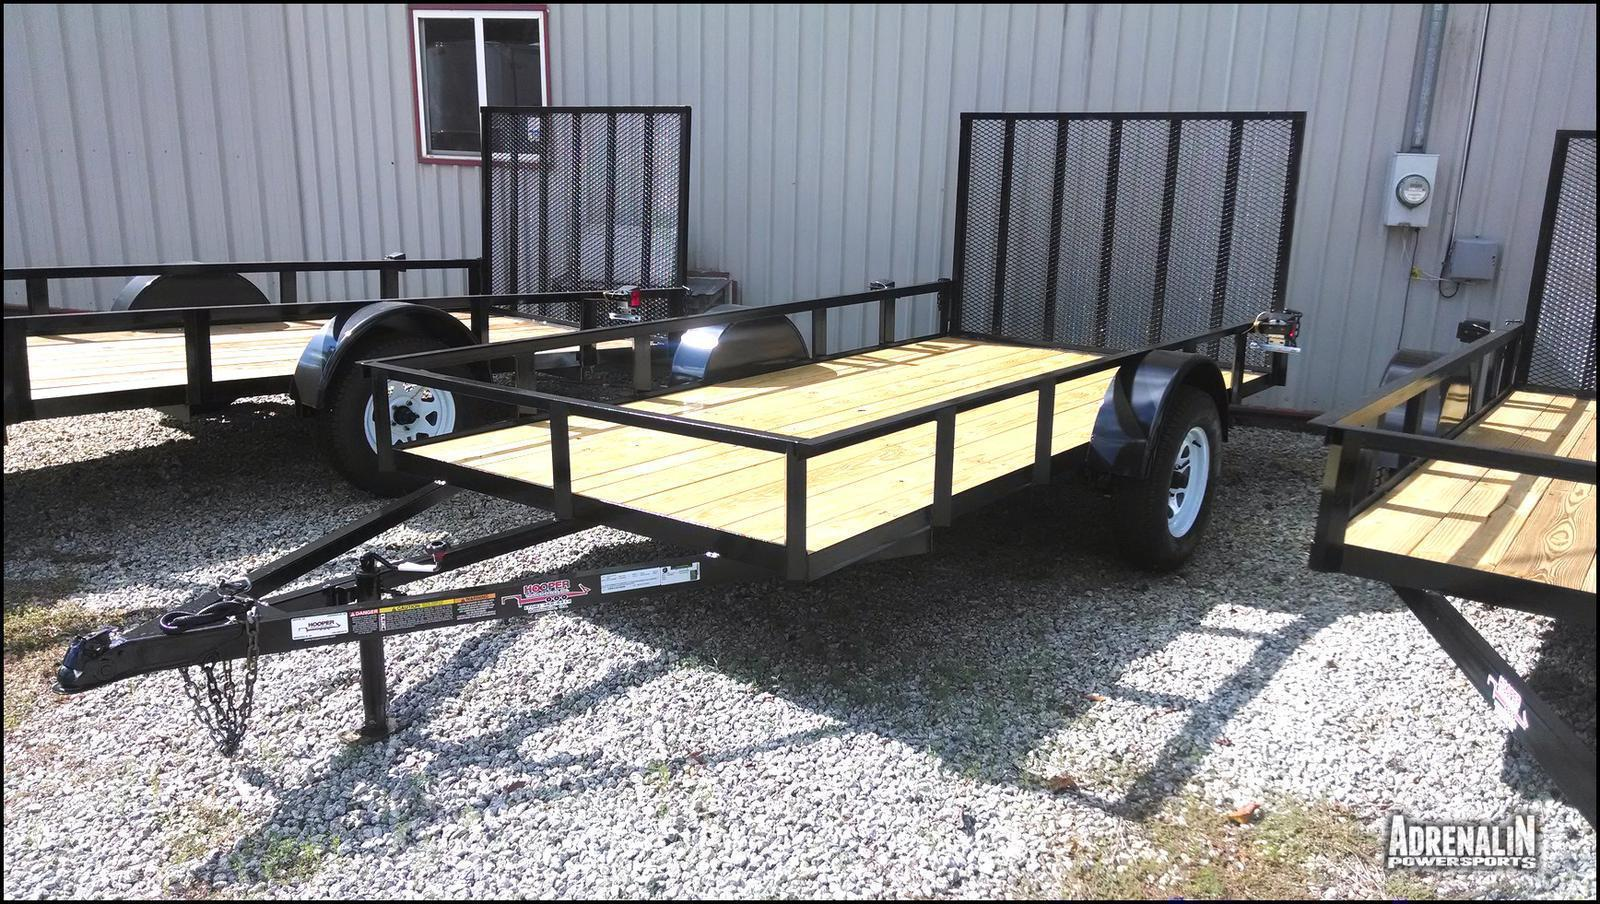 2018 Hooper Trailer Sales Inc Hooper  Utility Trailer For Sale In Griffin Ga Adrenalin Powersports Griffin Ga